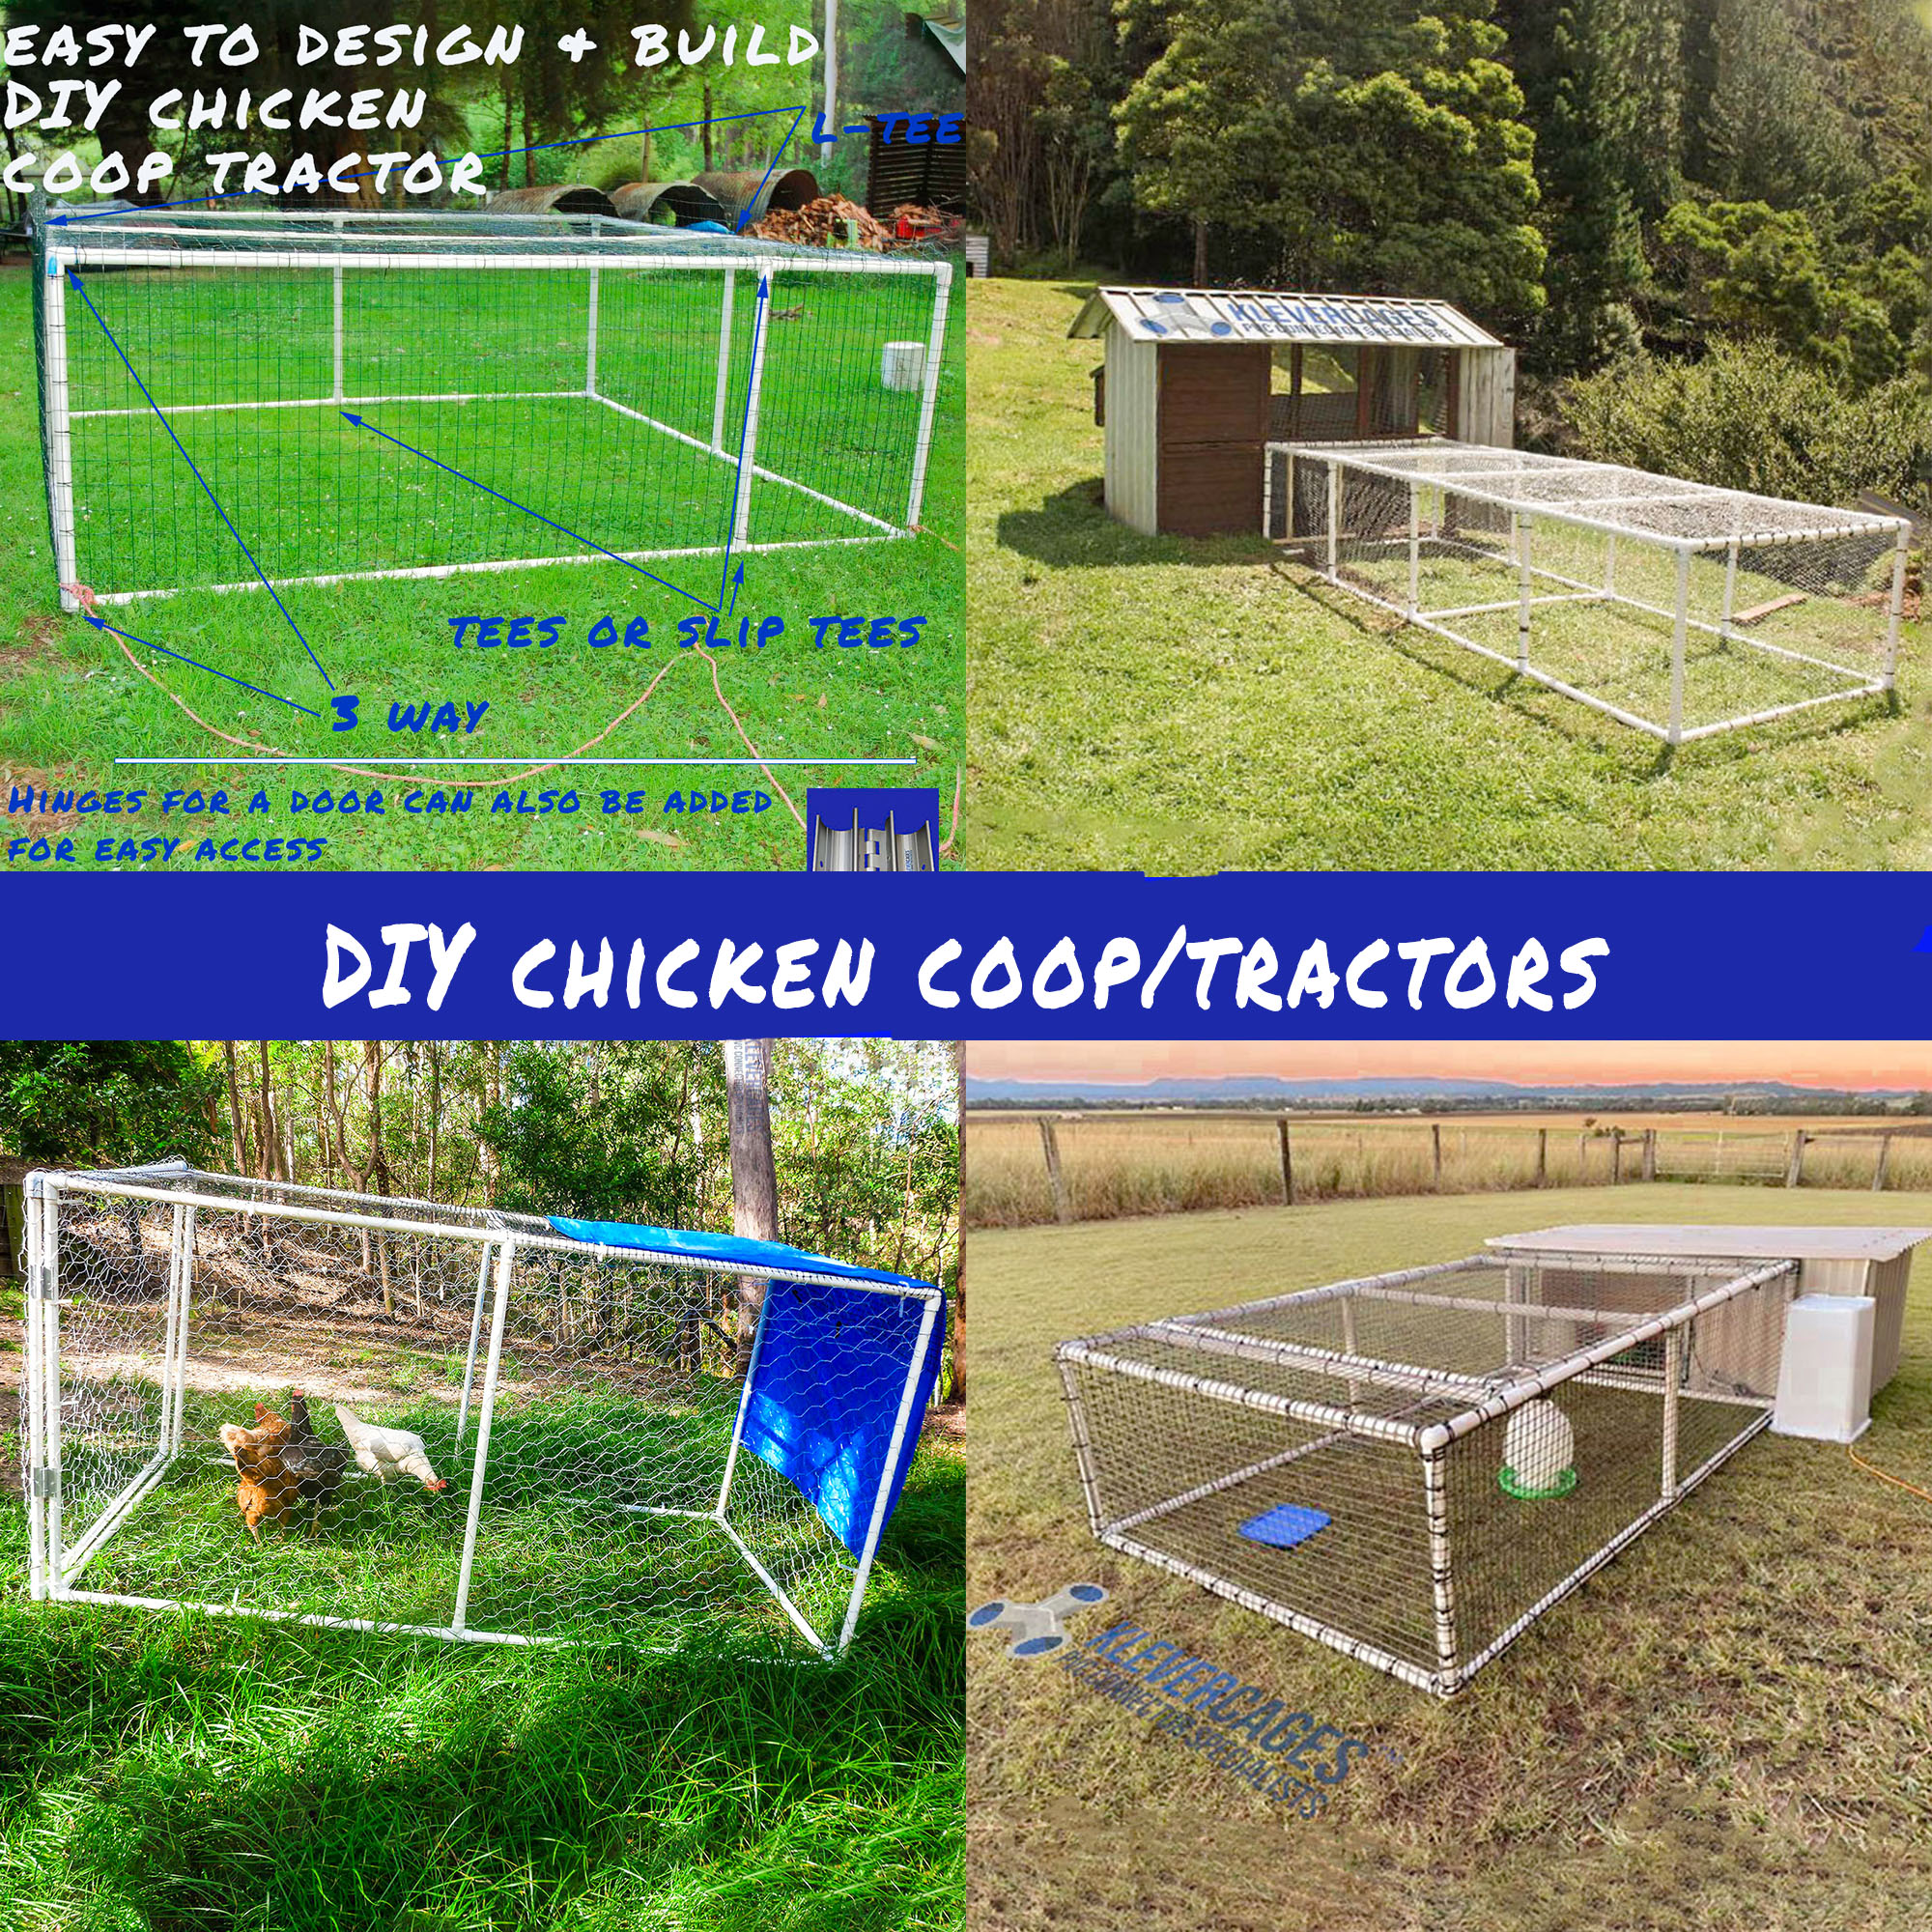 DIY chicken coop/tractors built by Klever Cages customers from PVC pipes and connectors